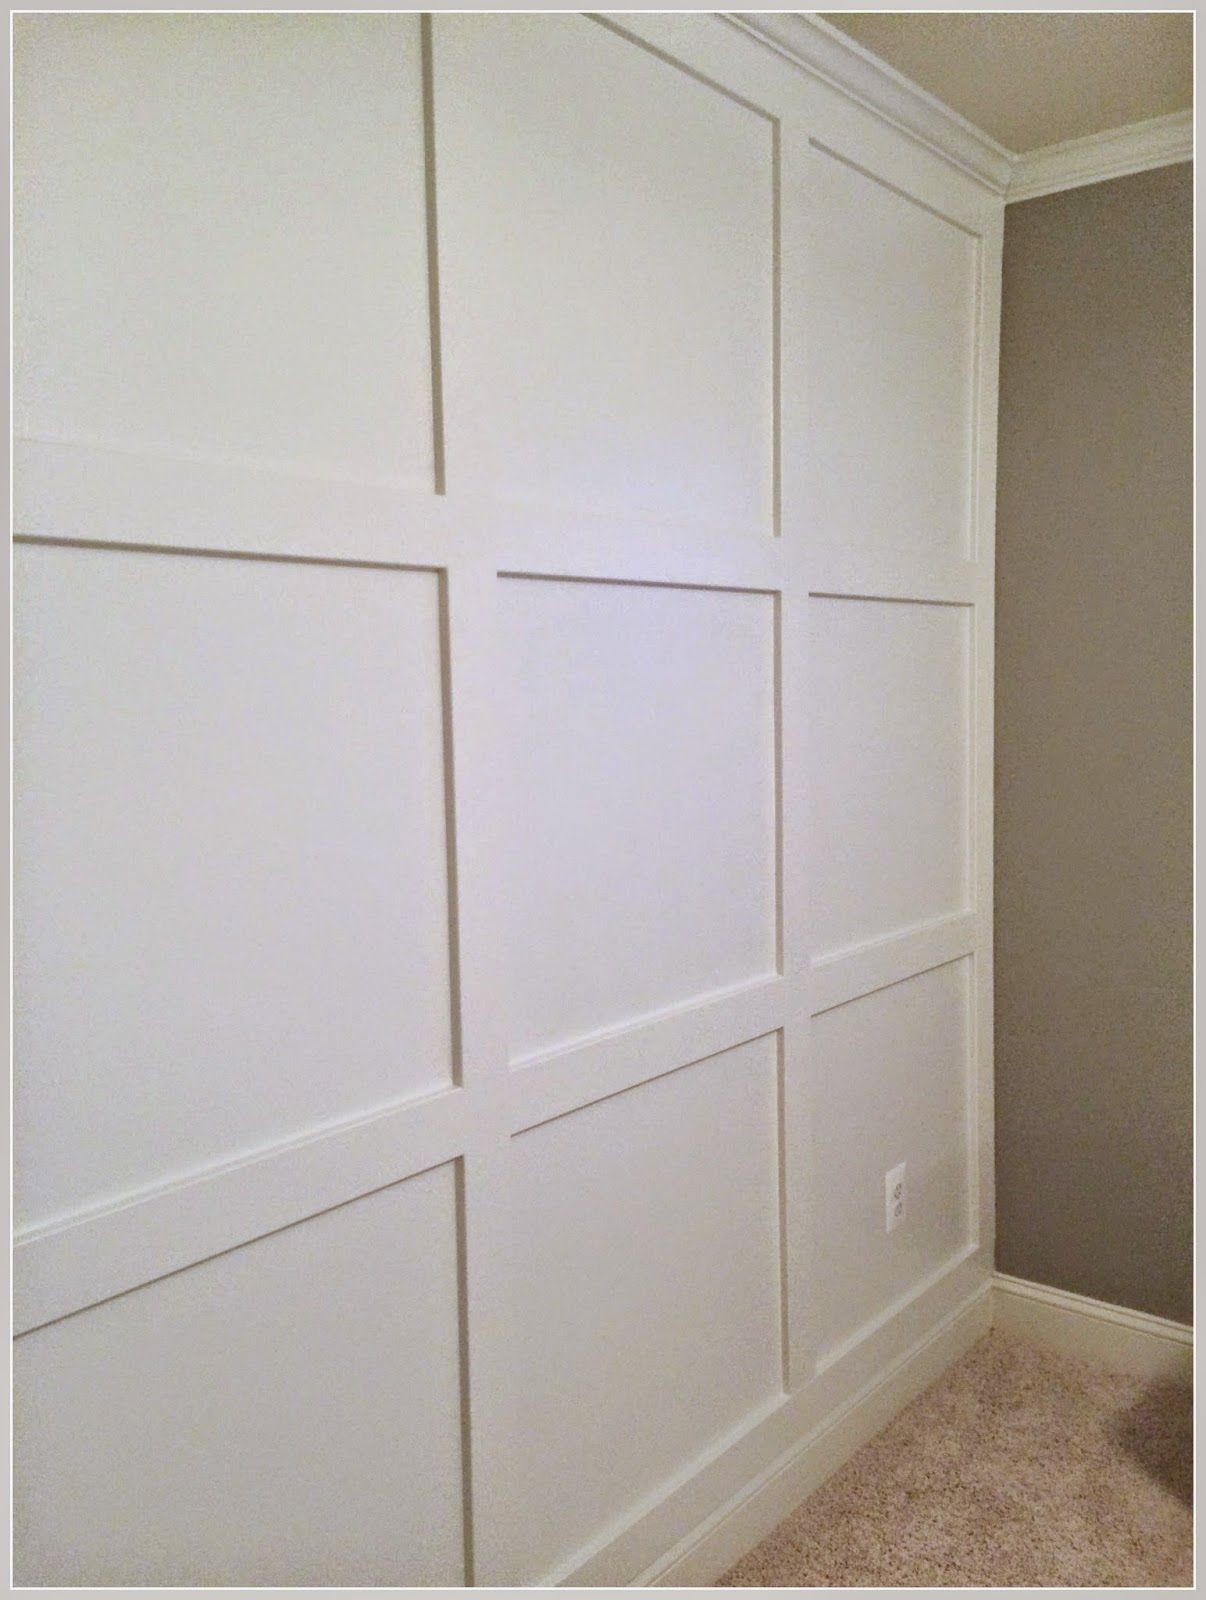 diy square molding accent wall with crown happily island. Black Bedroom Furniture Sets. Home Design Ideas